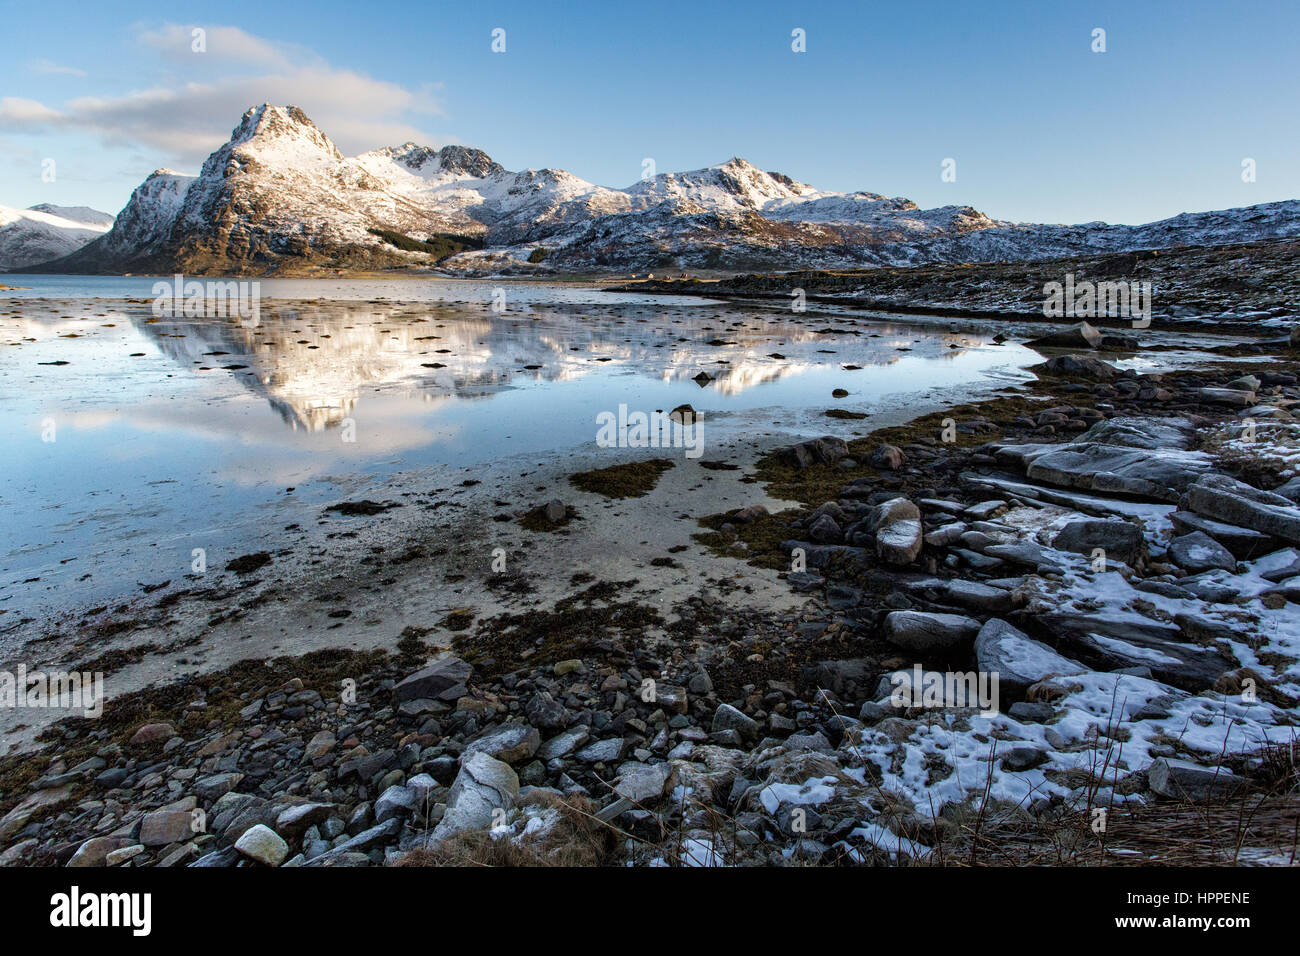 Flakstadoya seaside, Lofoten Islands, Norway, Europe - Stock Image